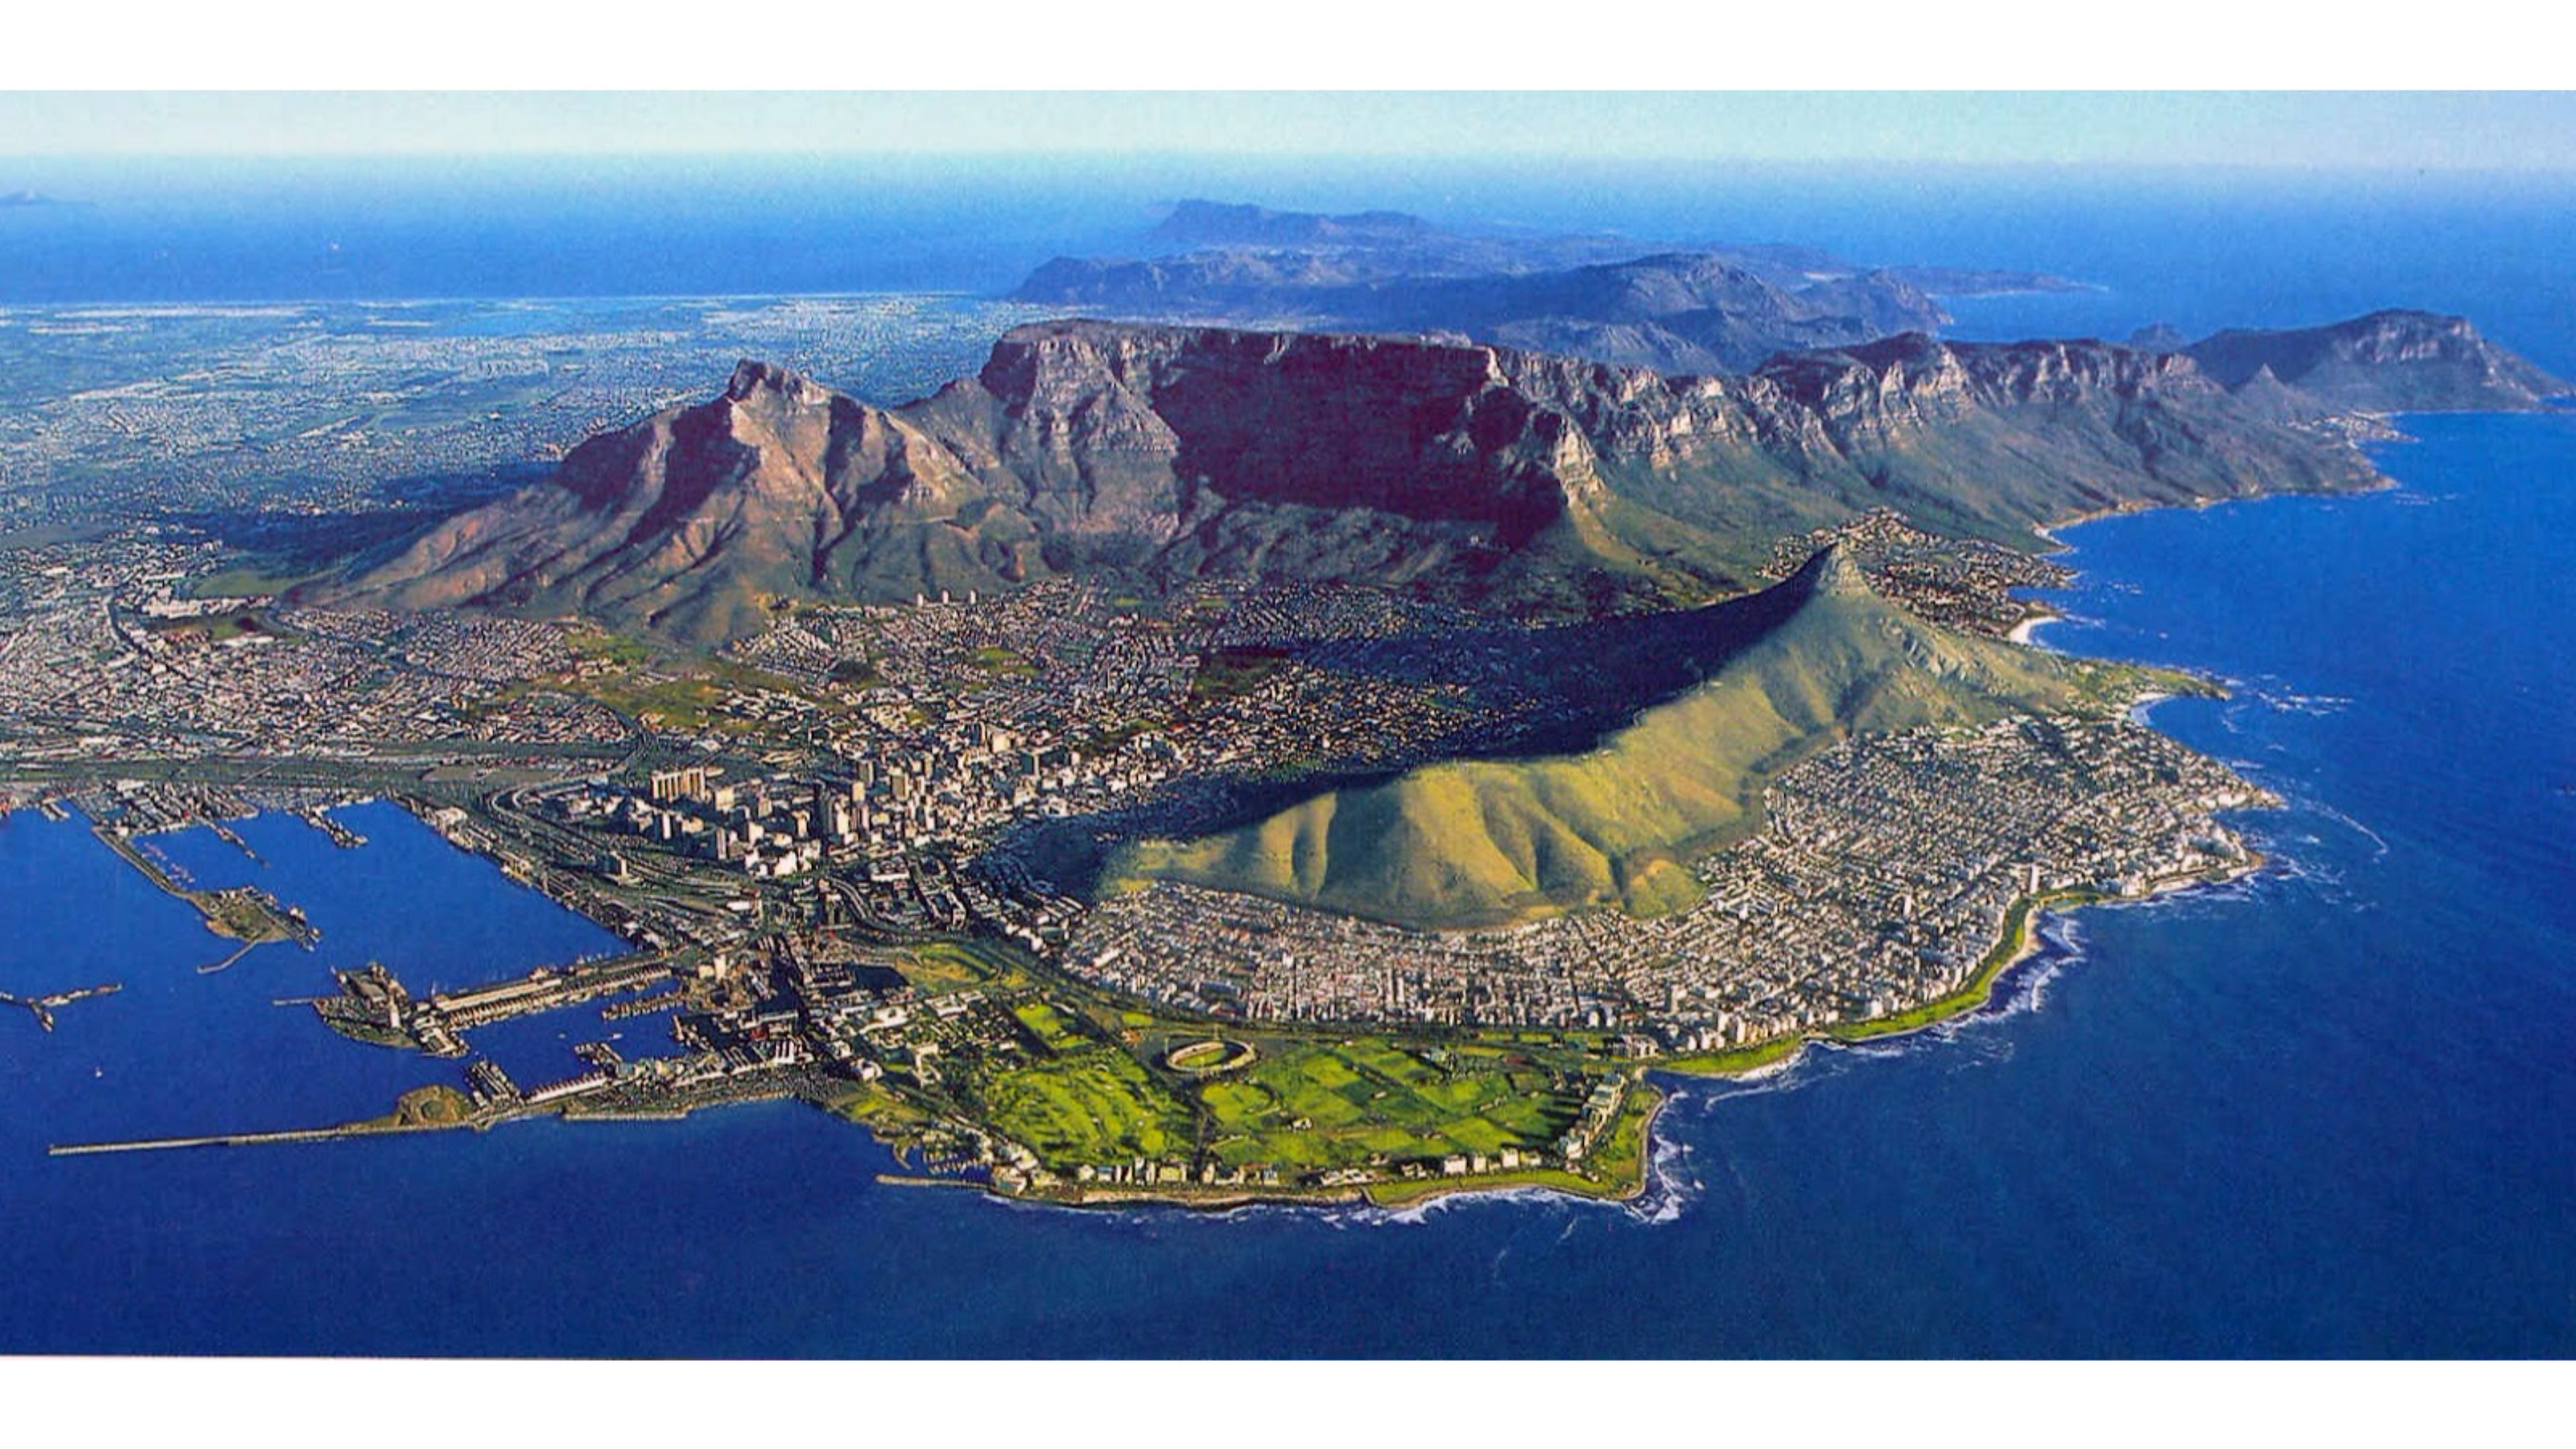 New Cape Town South Africa Wallpaper Free Look Towna